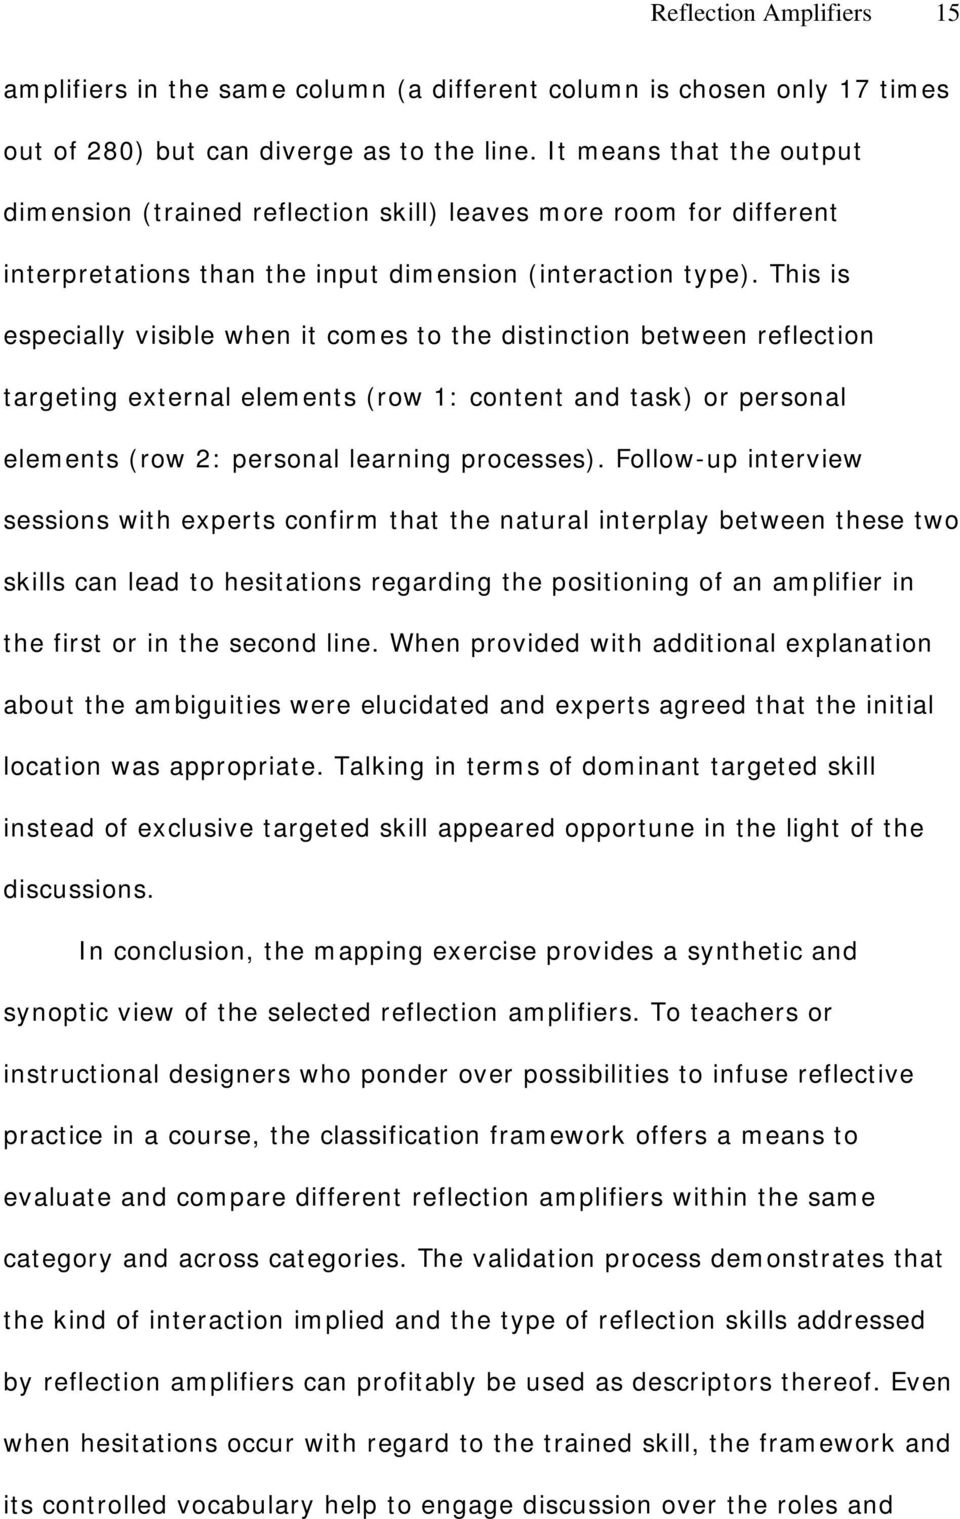 This is especially visible when it comes to the distinction between reflection targeting external elements (row 1: content and task) or personal elements (row 2: personal learning processes).